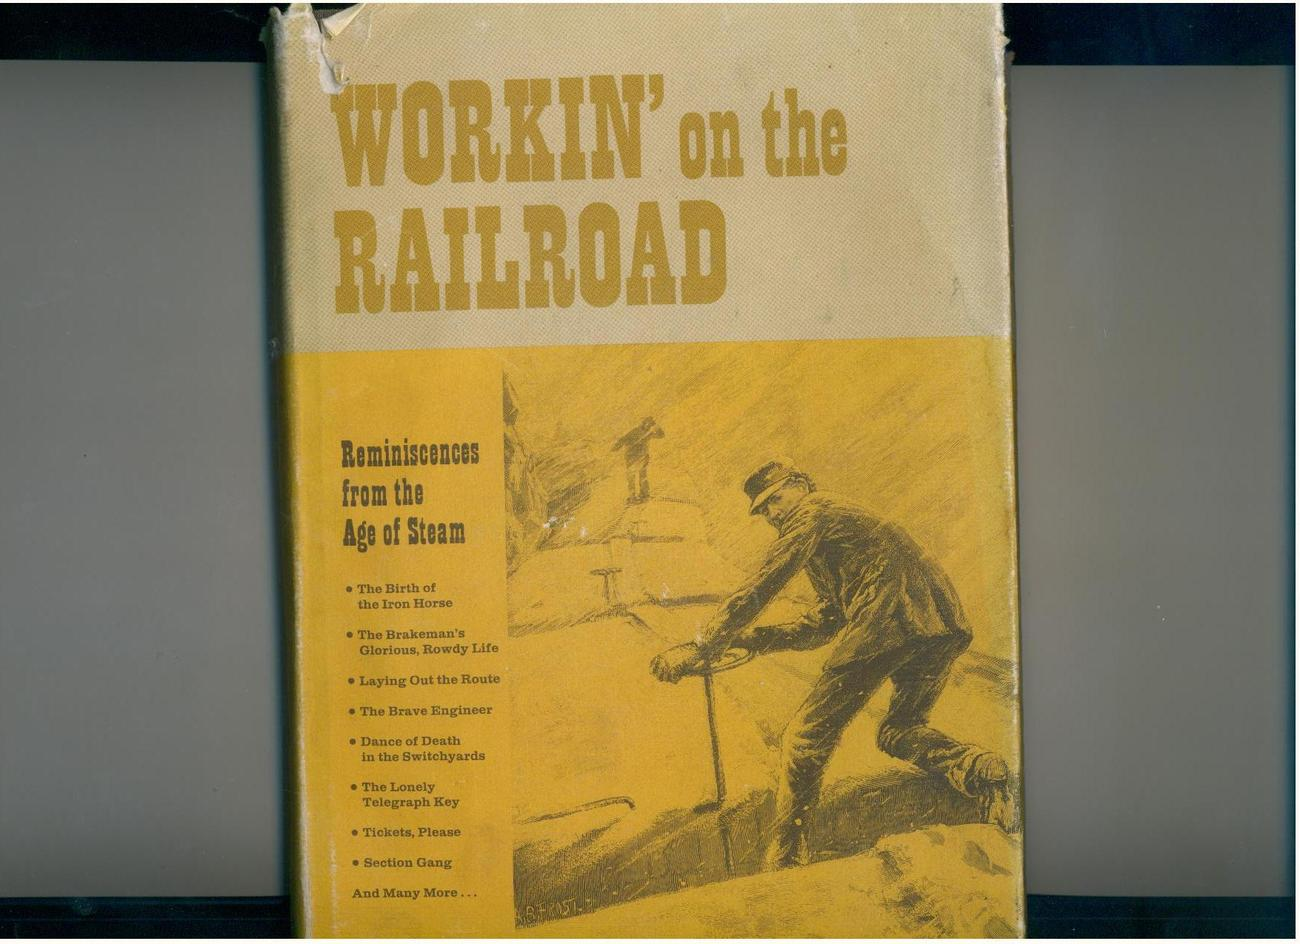 Workin' on the Railroad 1971 lore of the Age of Steam